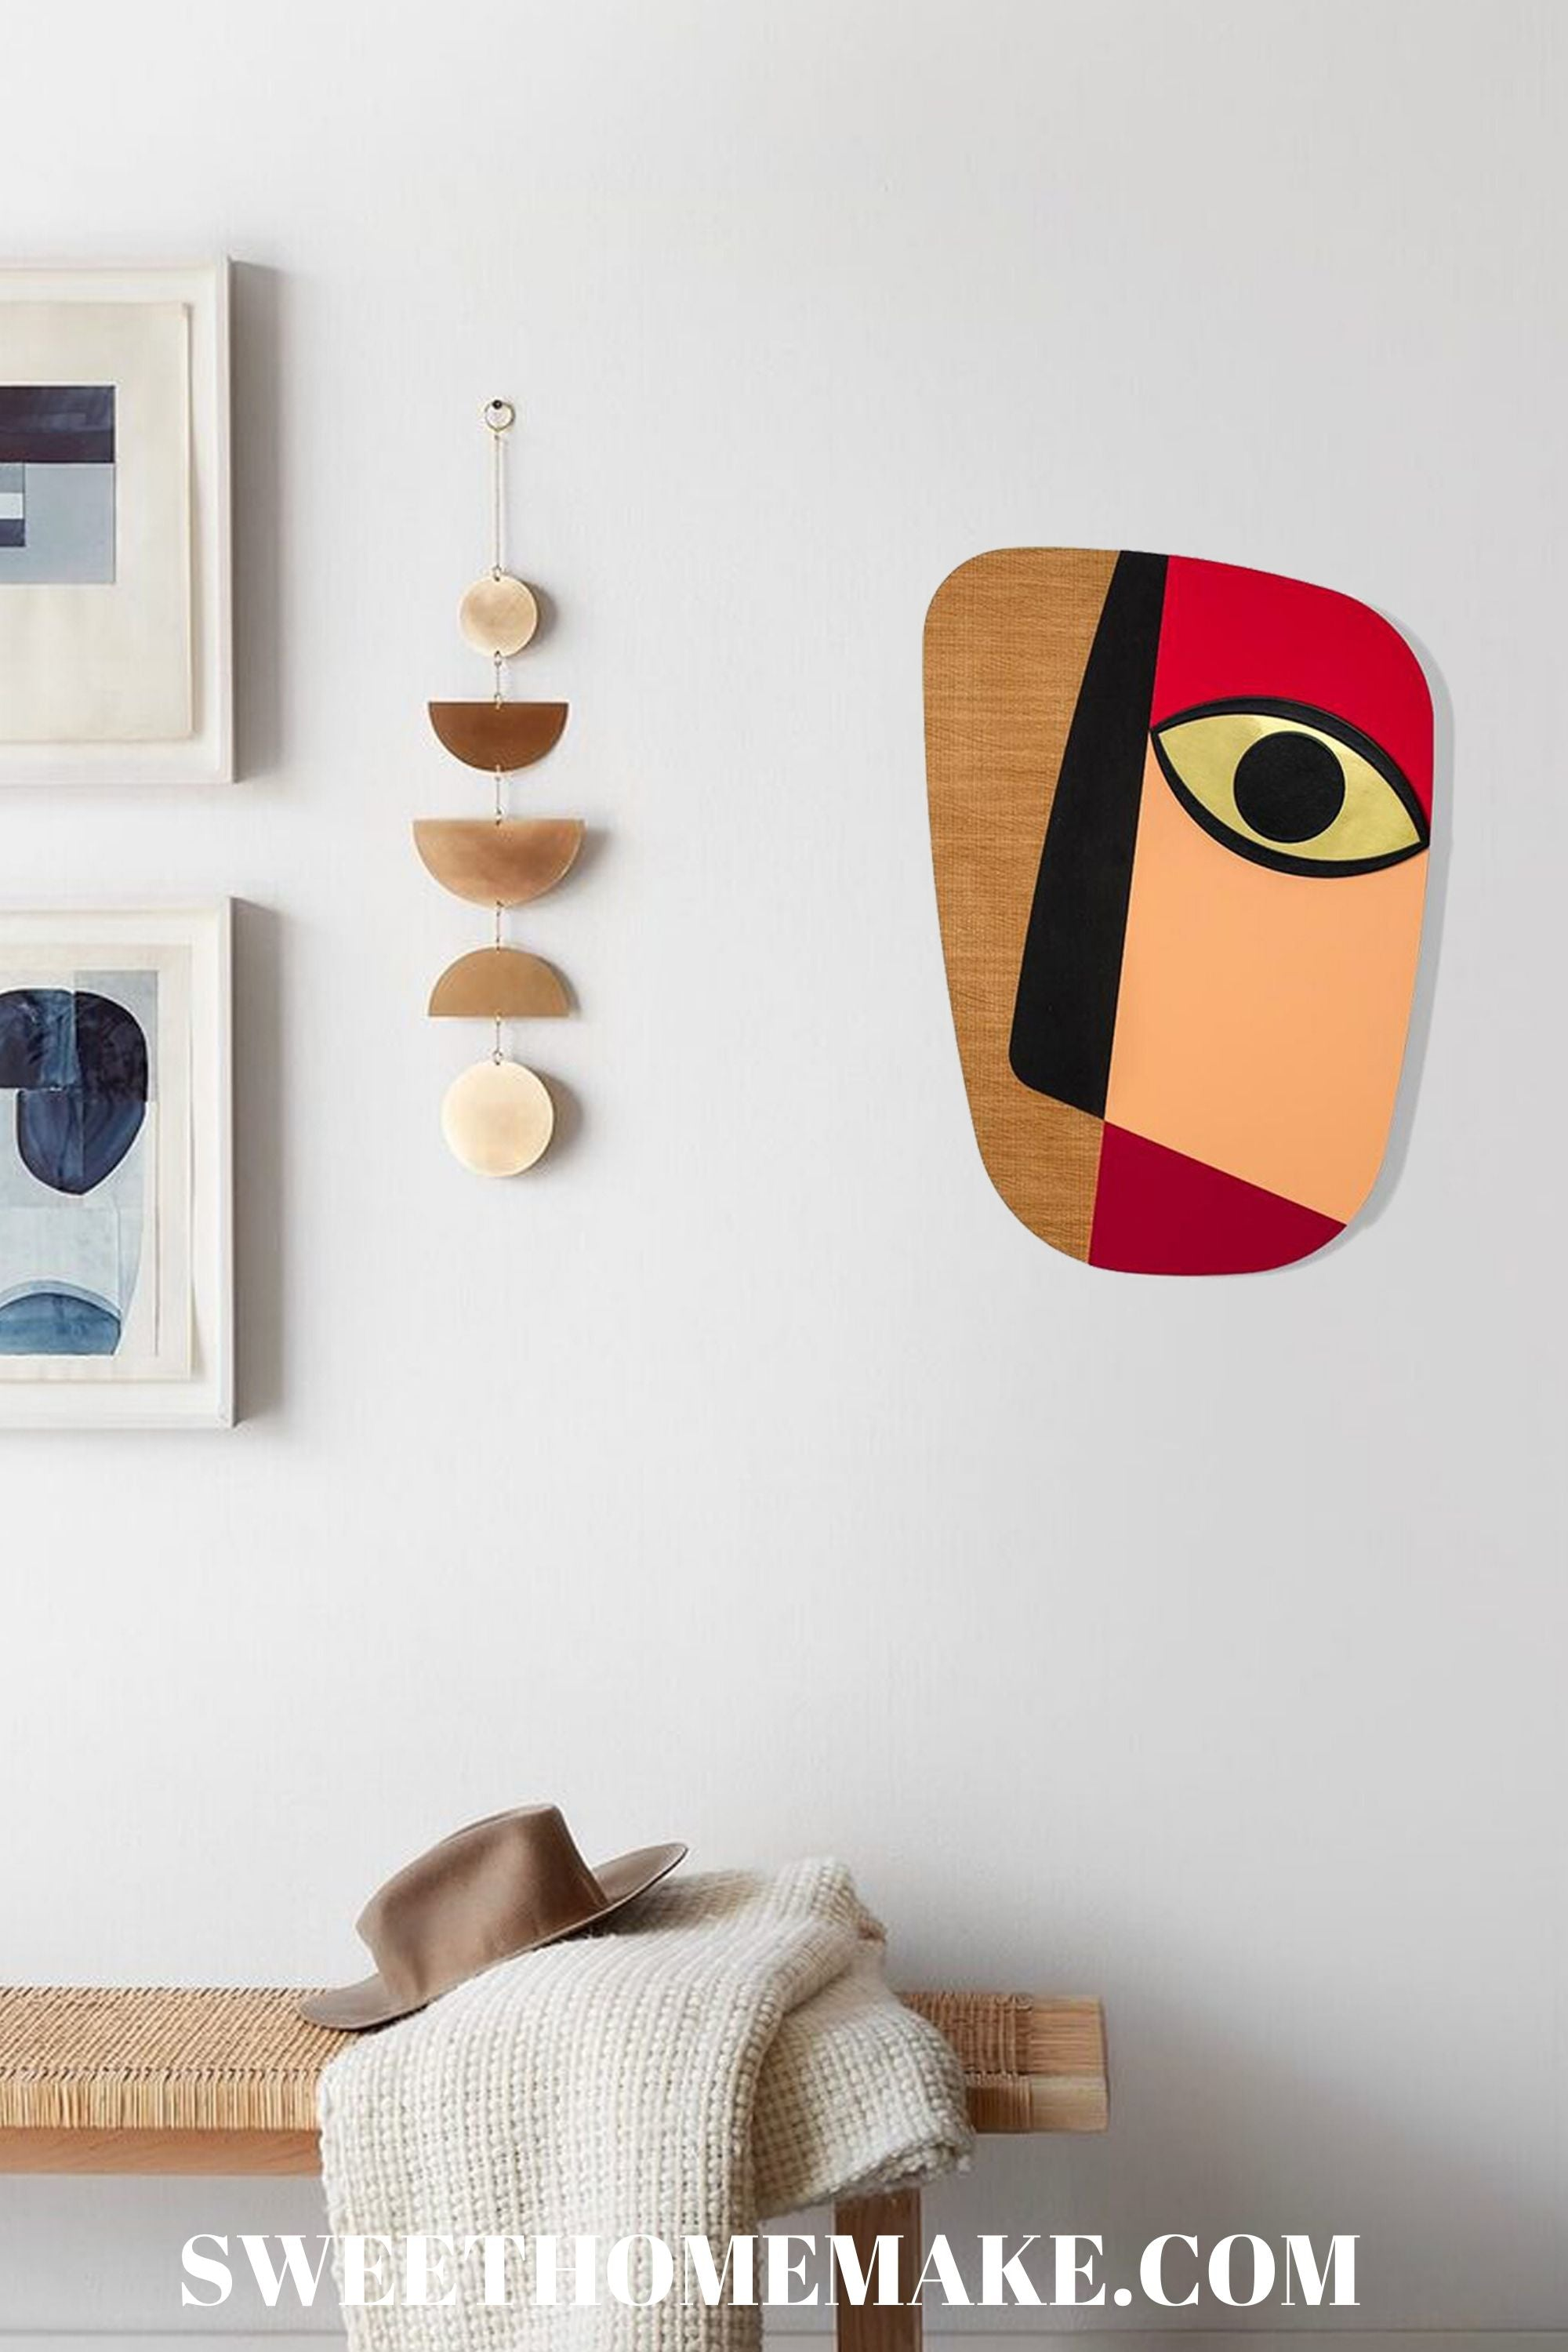 Mask Wall Decor: The Artistic Face of Aesthetic Creativity in Home